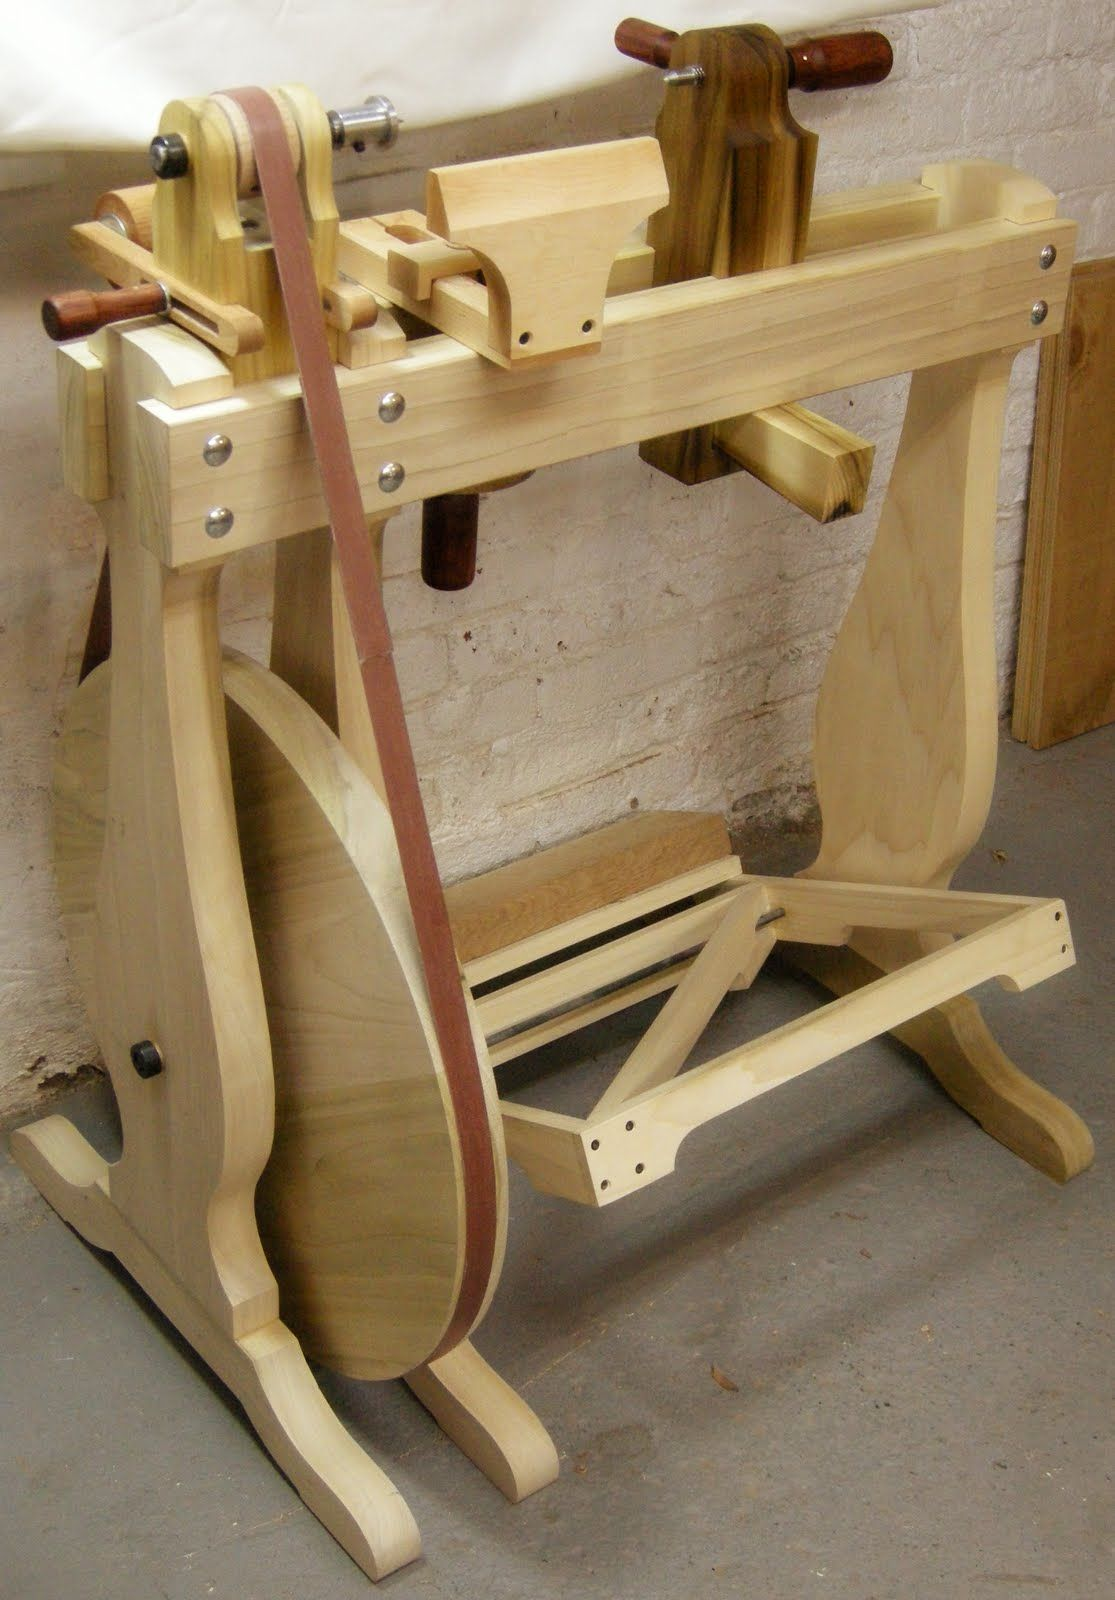 Cool Machines To Build Homemade Treadle Wood Lathe Plans Homemade Ftempo